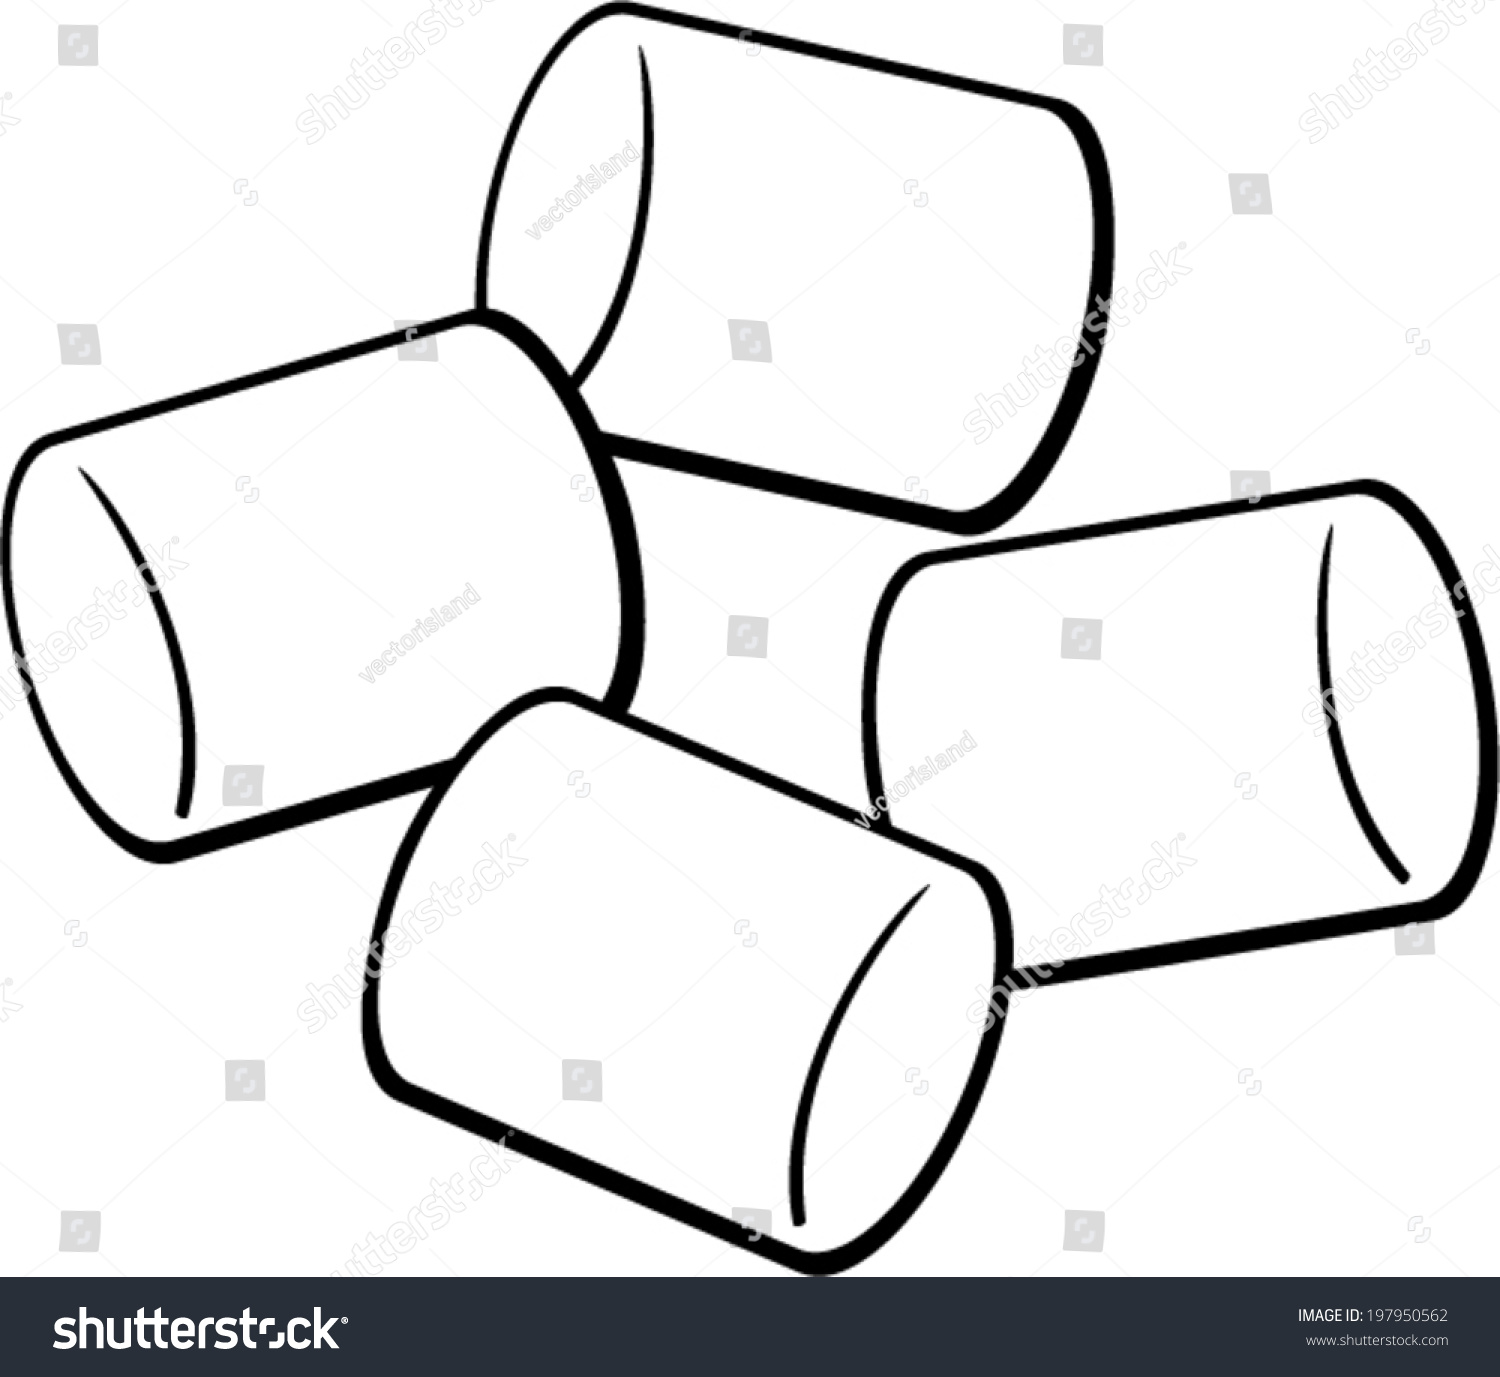 Marshmallow Clipart Black And White | www.pixshark.com ...